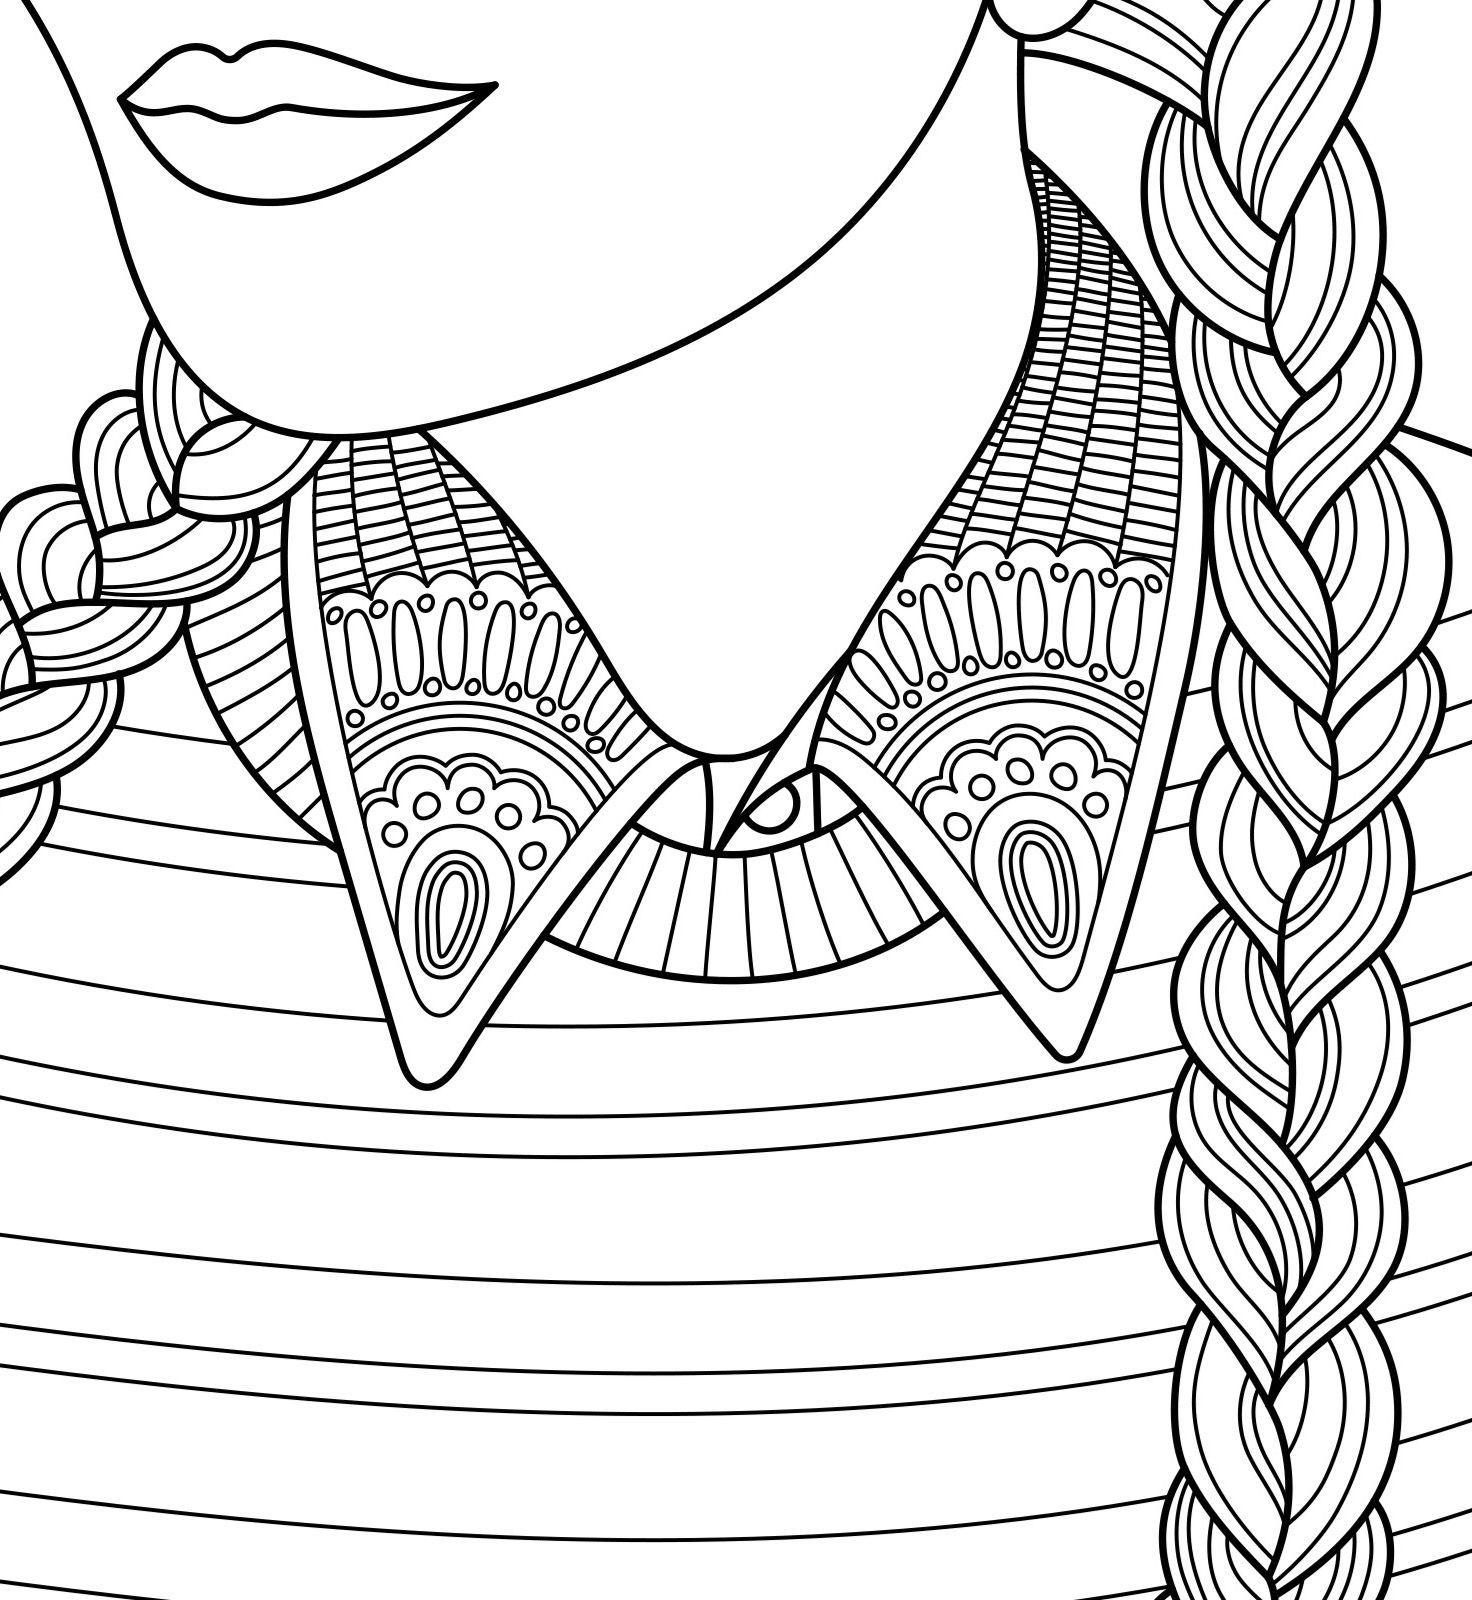 Girl With Plaits To Colour With Coloringbookforme Mandala Coloring Pages Coloring Pages Mandala Coloring